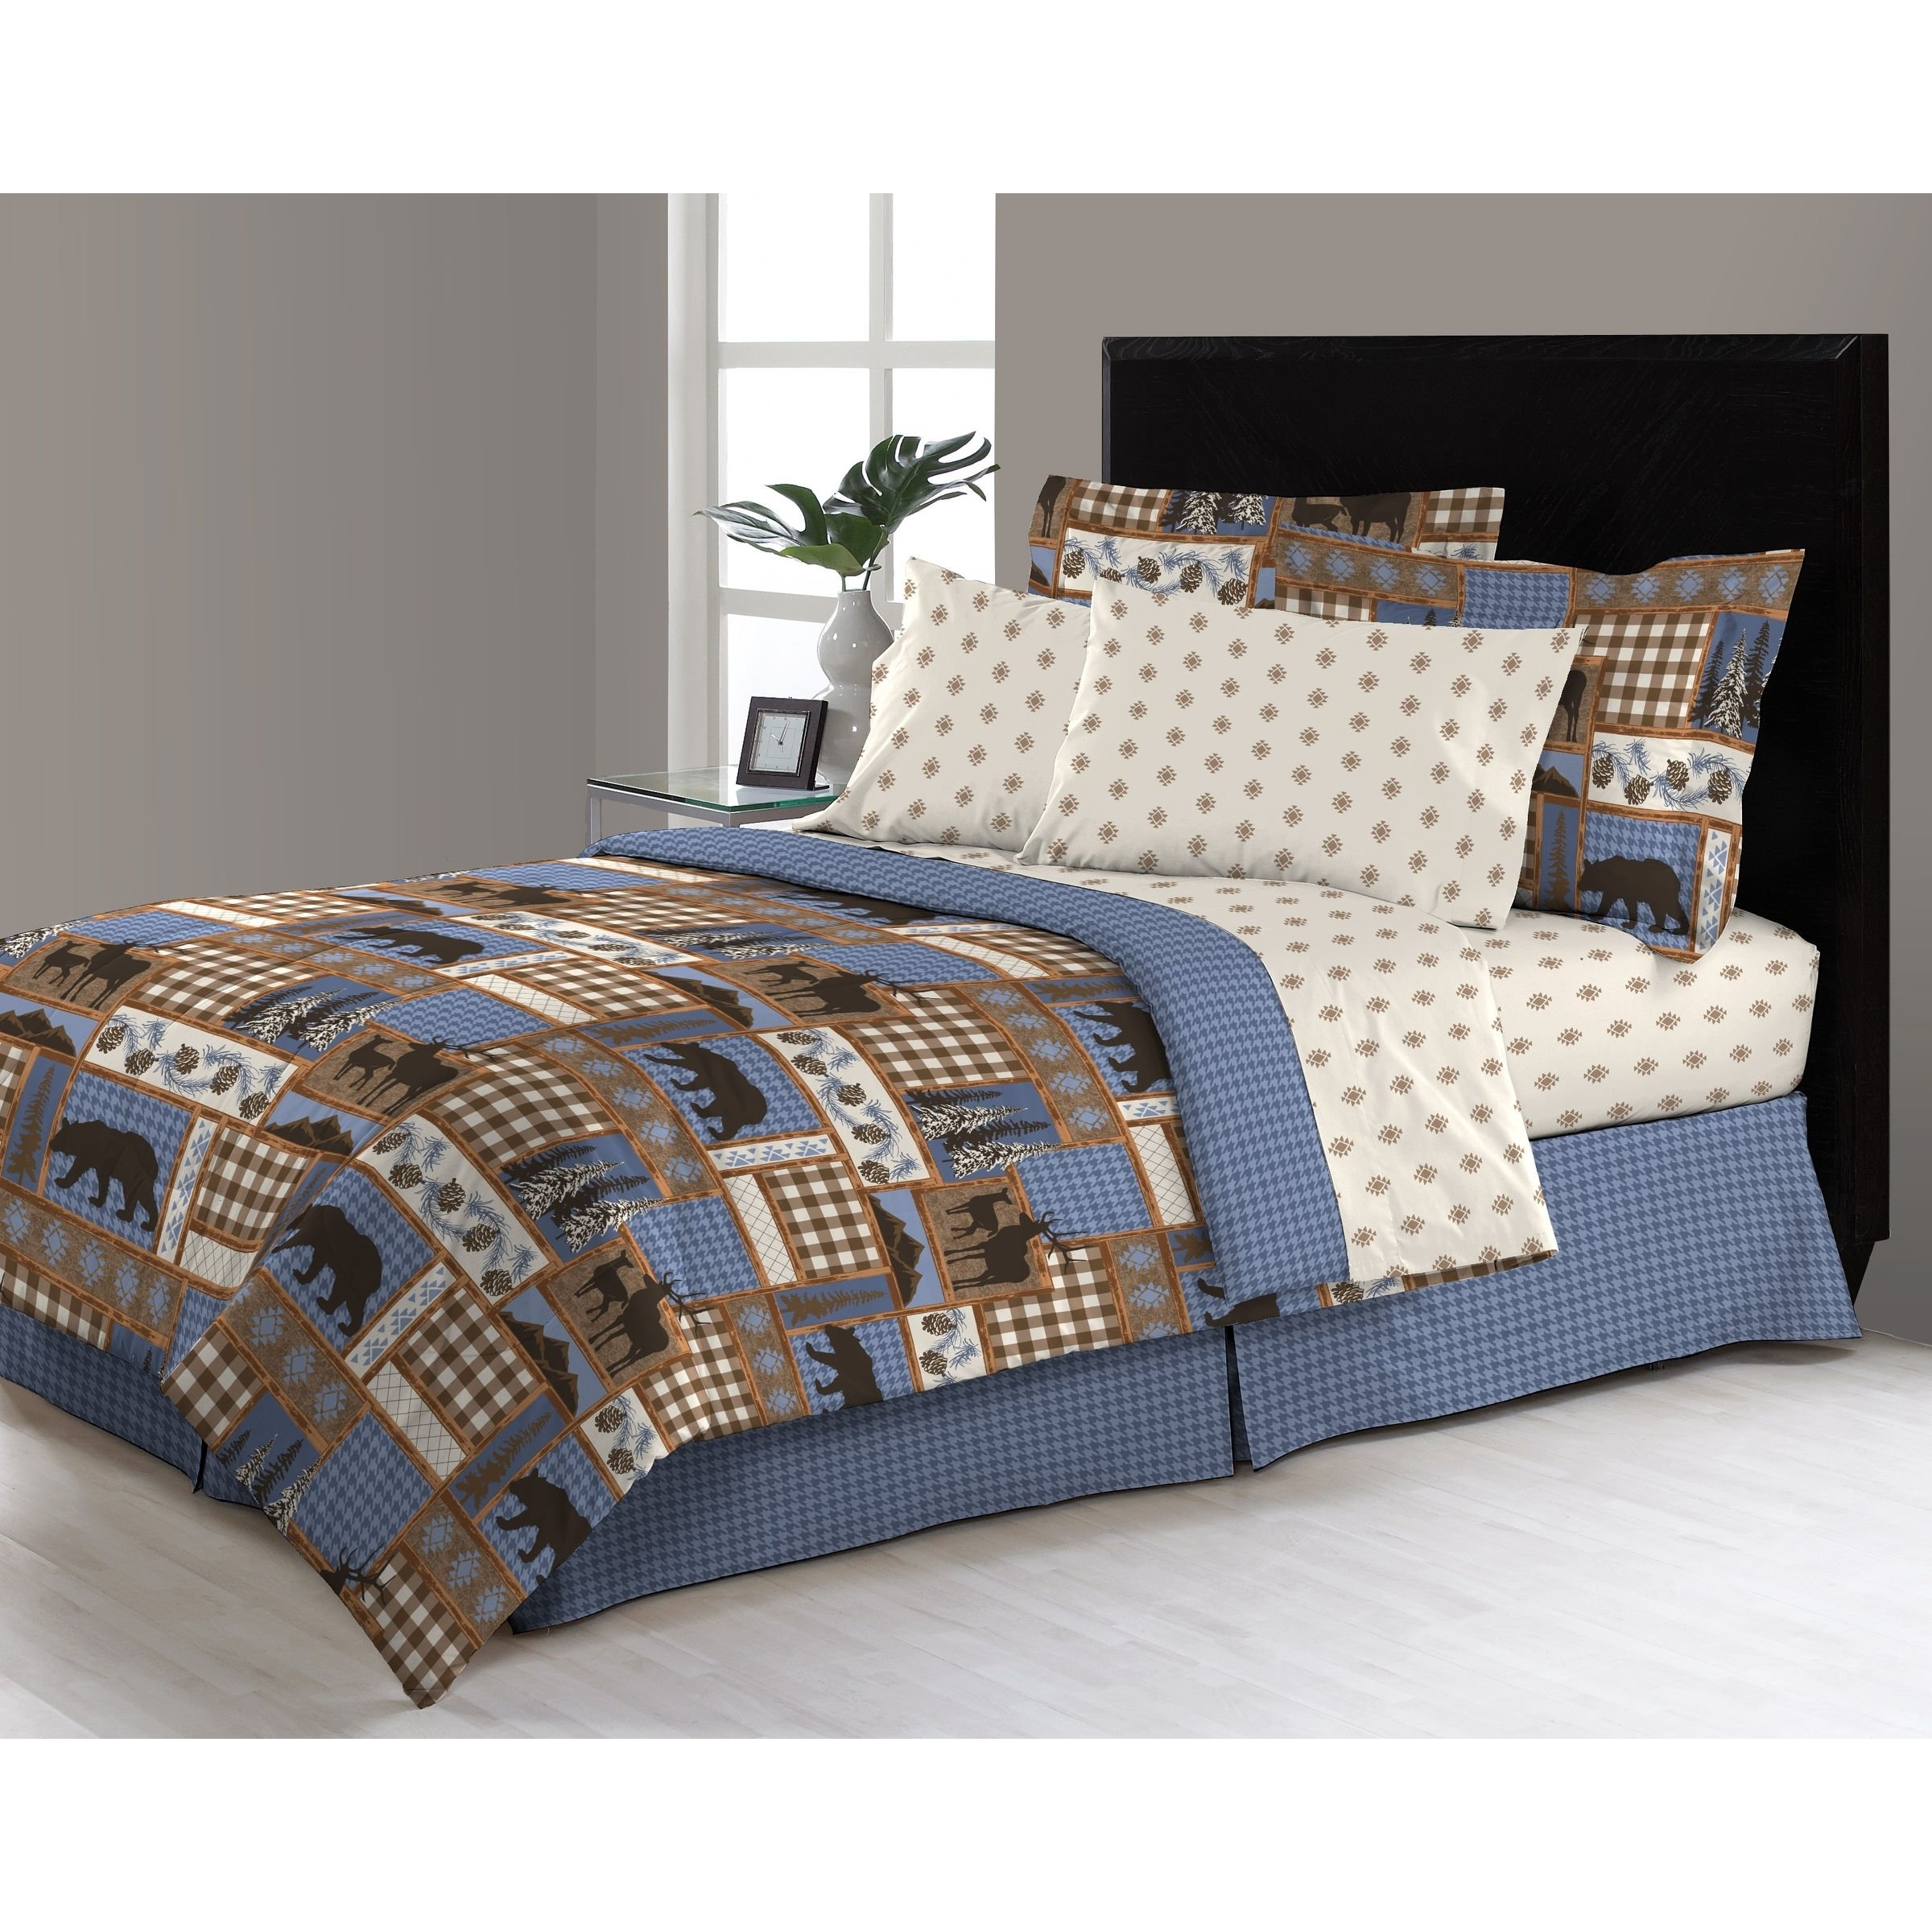 6 Piece Blue Tan Brown Hunting Themed Comforter Twin Set, Deer Bedding Moose Mountains Elk Pine Trees Comb Cabin Themed Lodge Plaid Lumberjack Pattern Wildlife Animals Woods Hunt Game, Microfiber